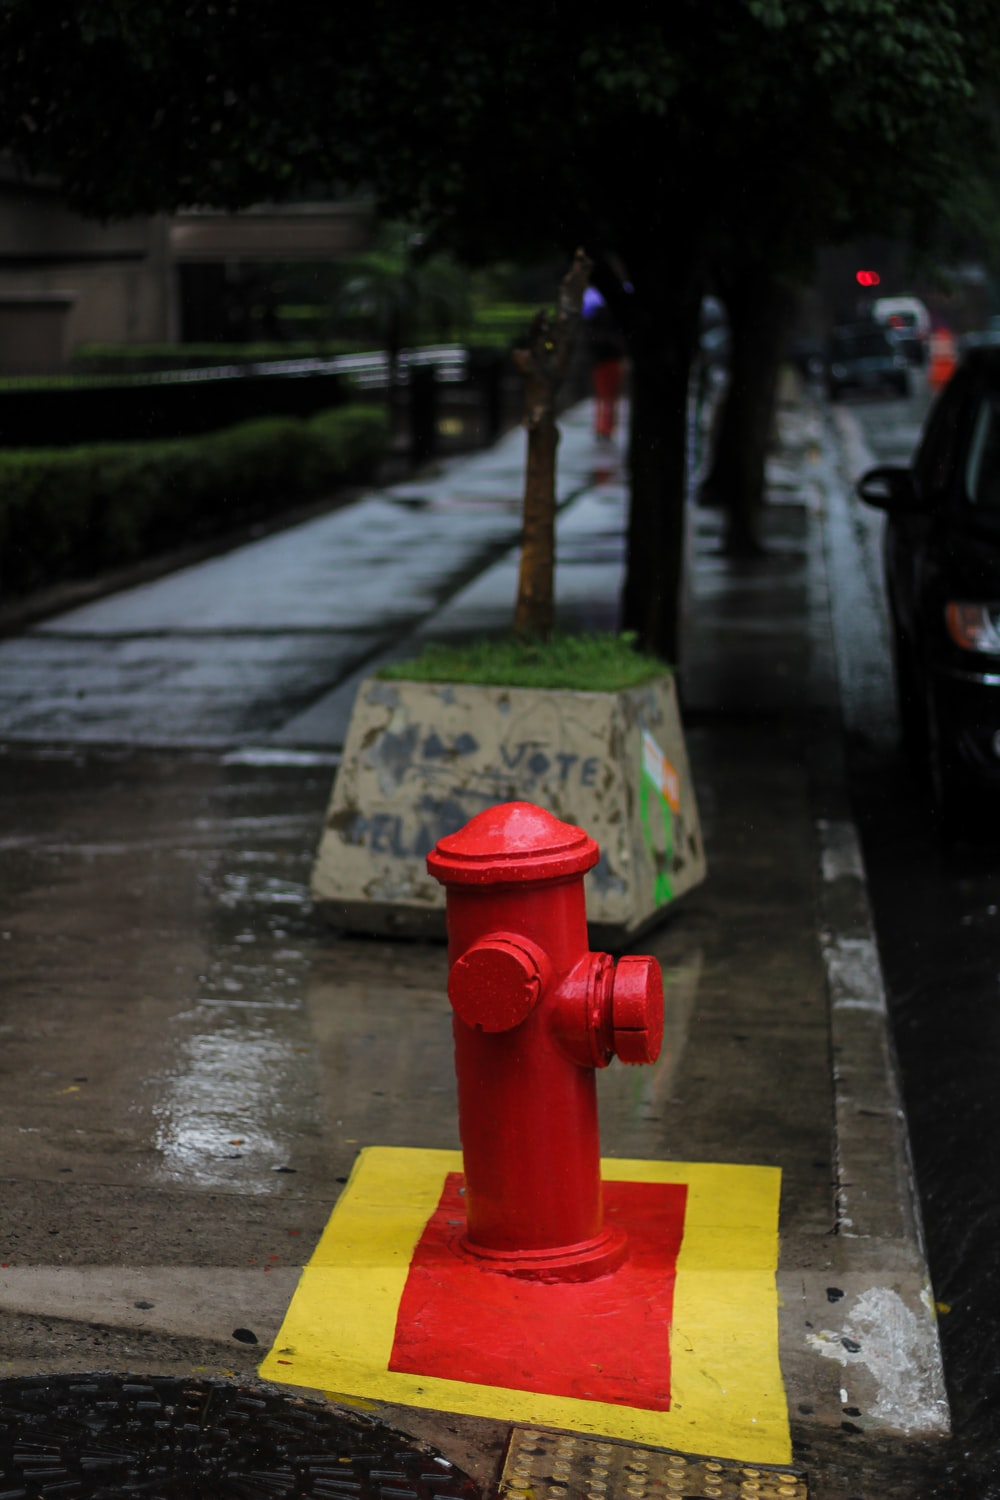 red fire hydrant beside road